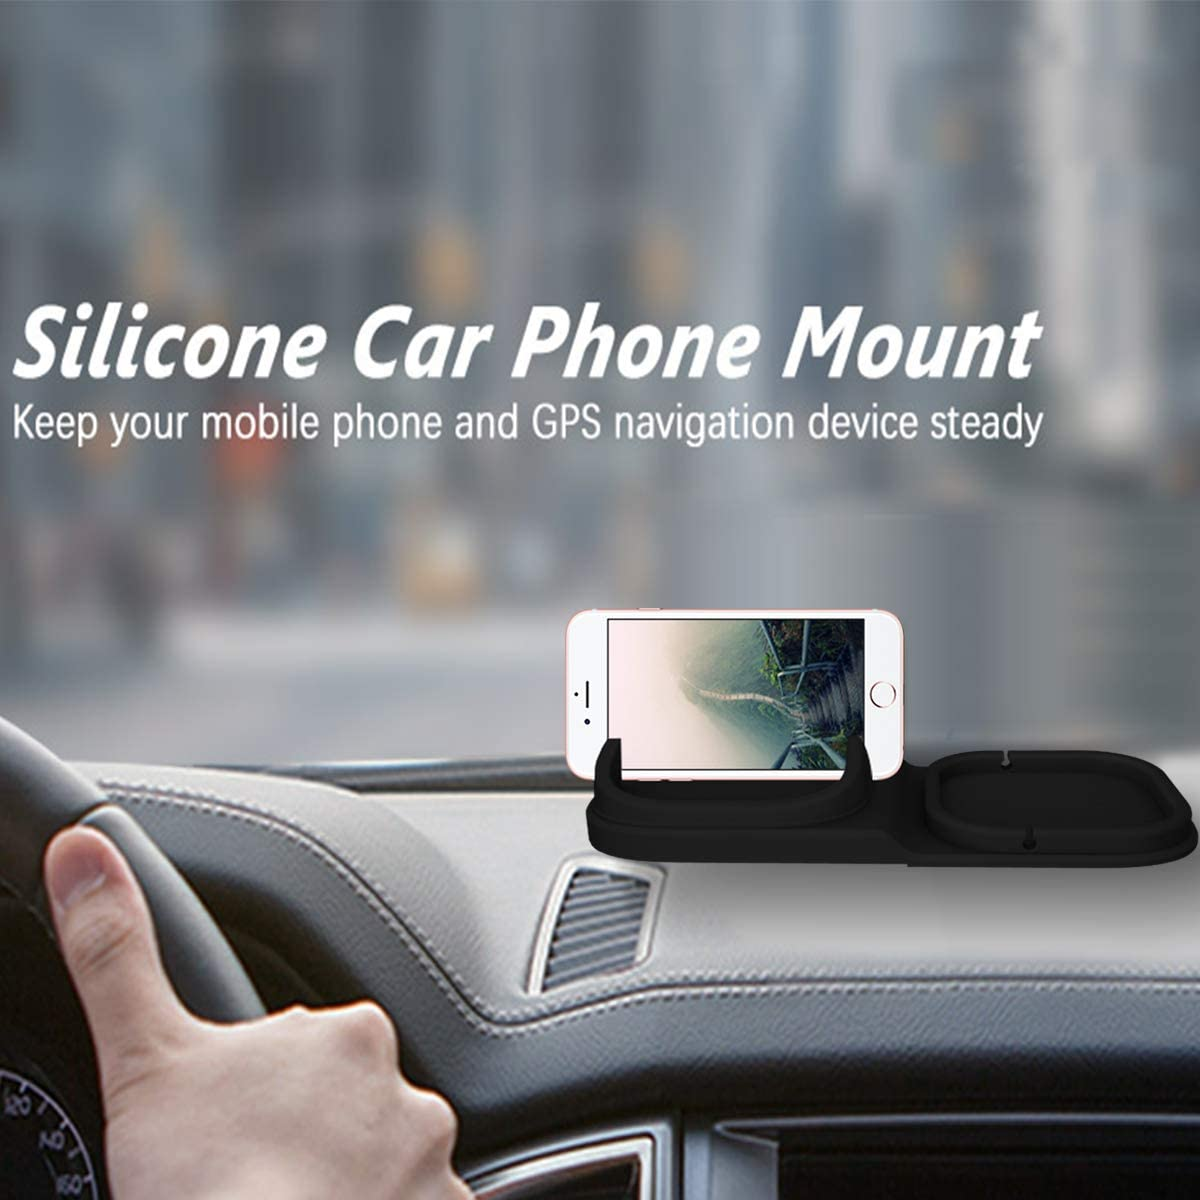 Car Phone Mount Silicone Car Pad Mat for Various Dashboards,Car Cell Phone Holder Hand Free for iPhone Samsung GPS Devices and More Android Smartphones Alquar Car Phone Holder Dashboard Anti-Slip